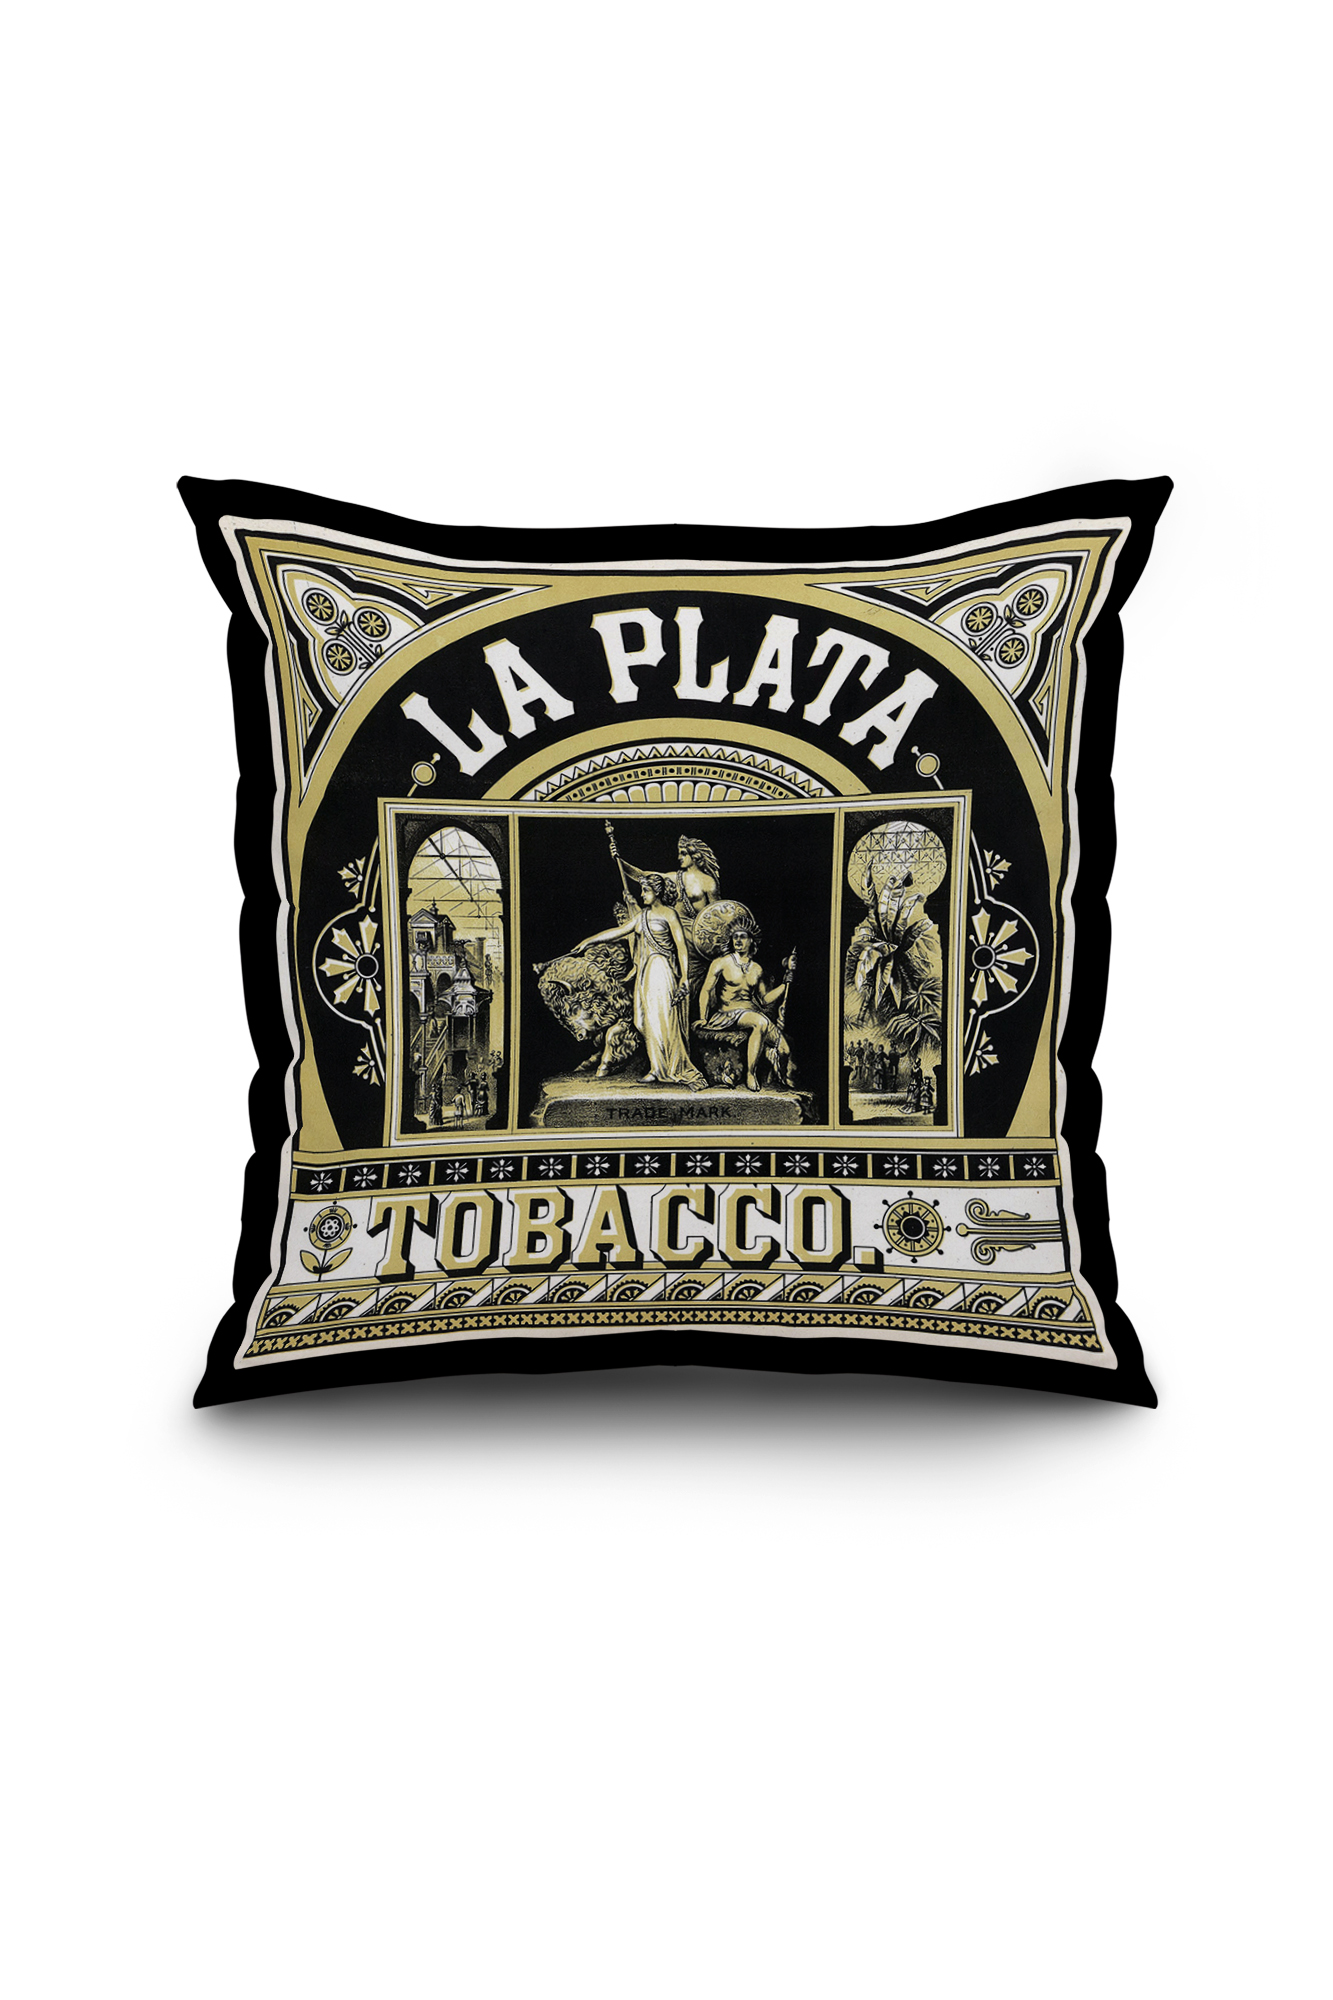 la plata brand tobacco label  18x18 spun polyester pillow  black border